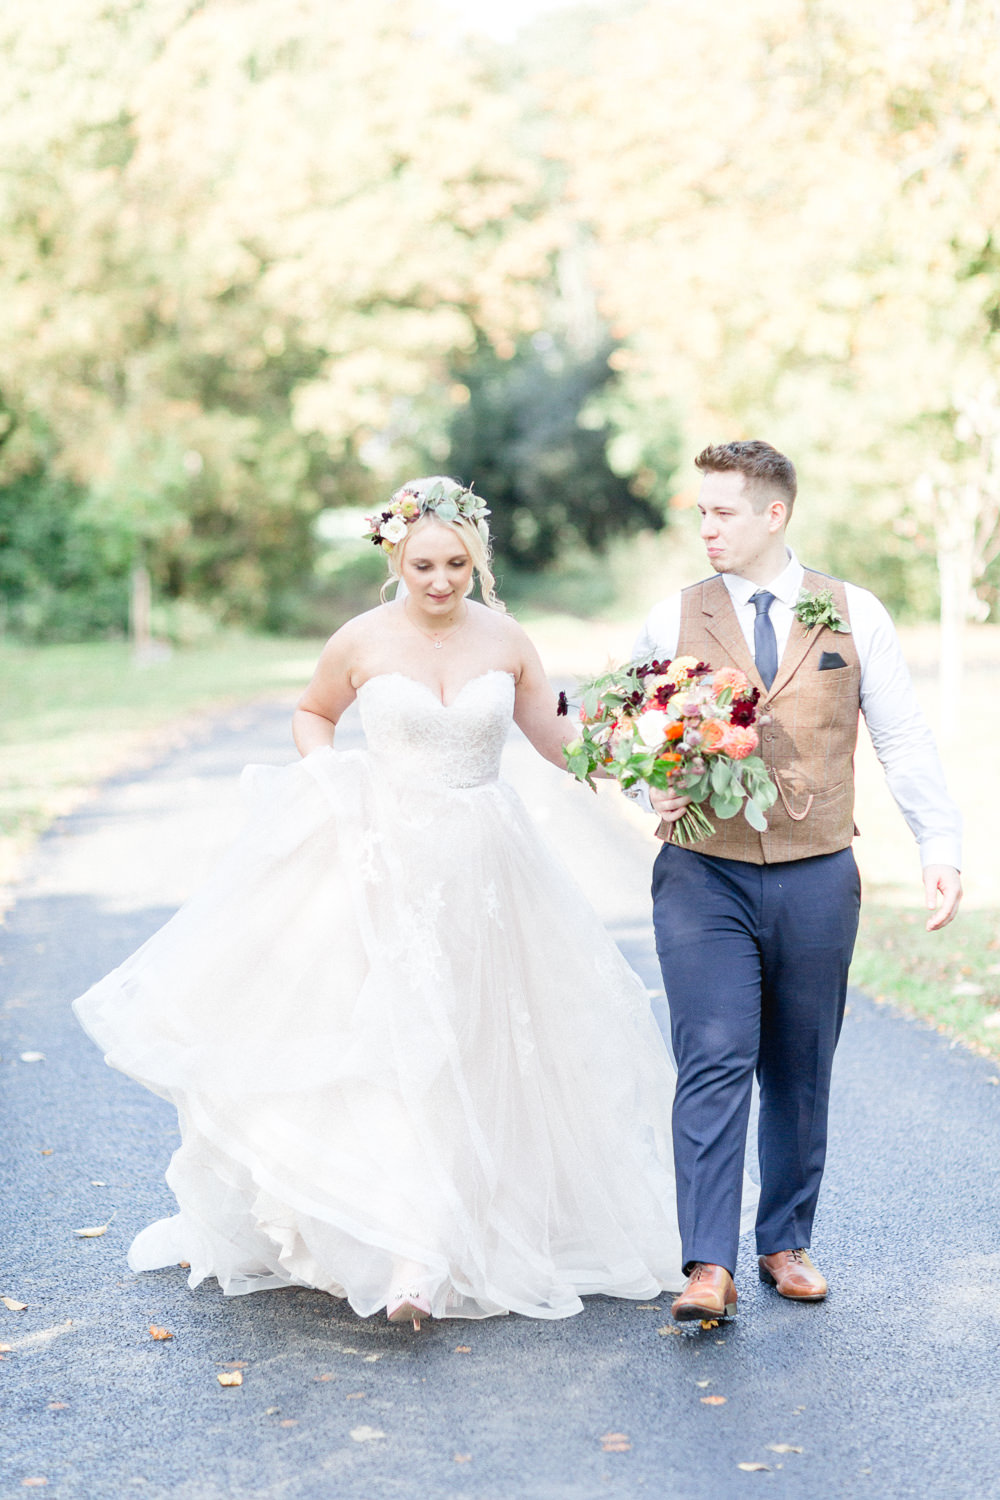 Groom Groomsmen Suits Attire Outfits Waistcoats Chinos Dress Gown Bride Bridal Lace Strapless Sweetheart Stella York Princess Ruffle Skirt Autumnal Boho Wedding Ivory White Photography